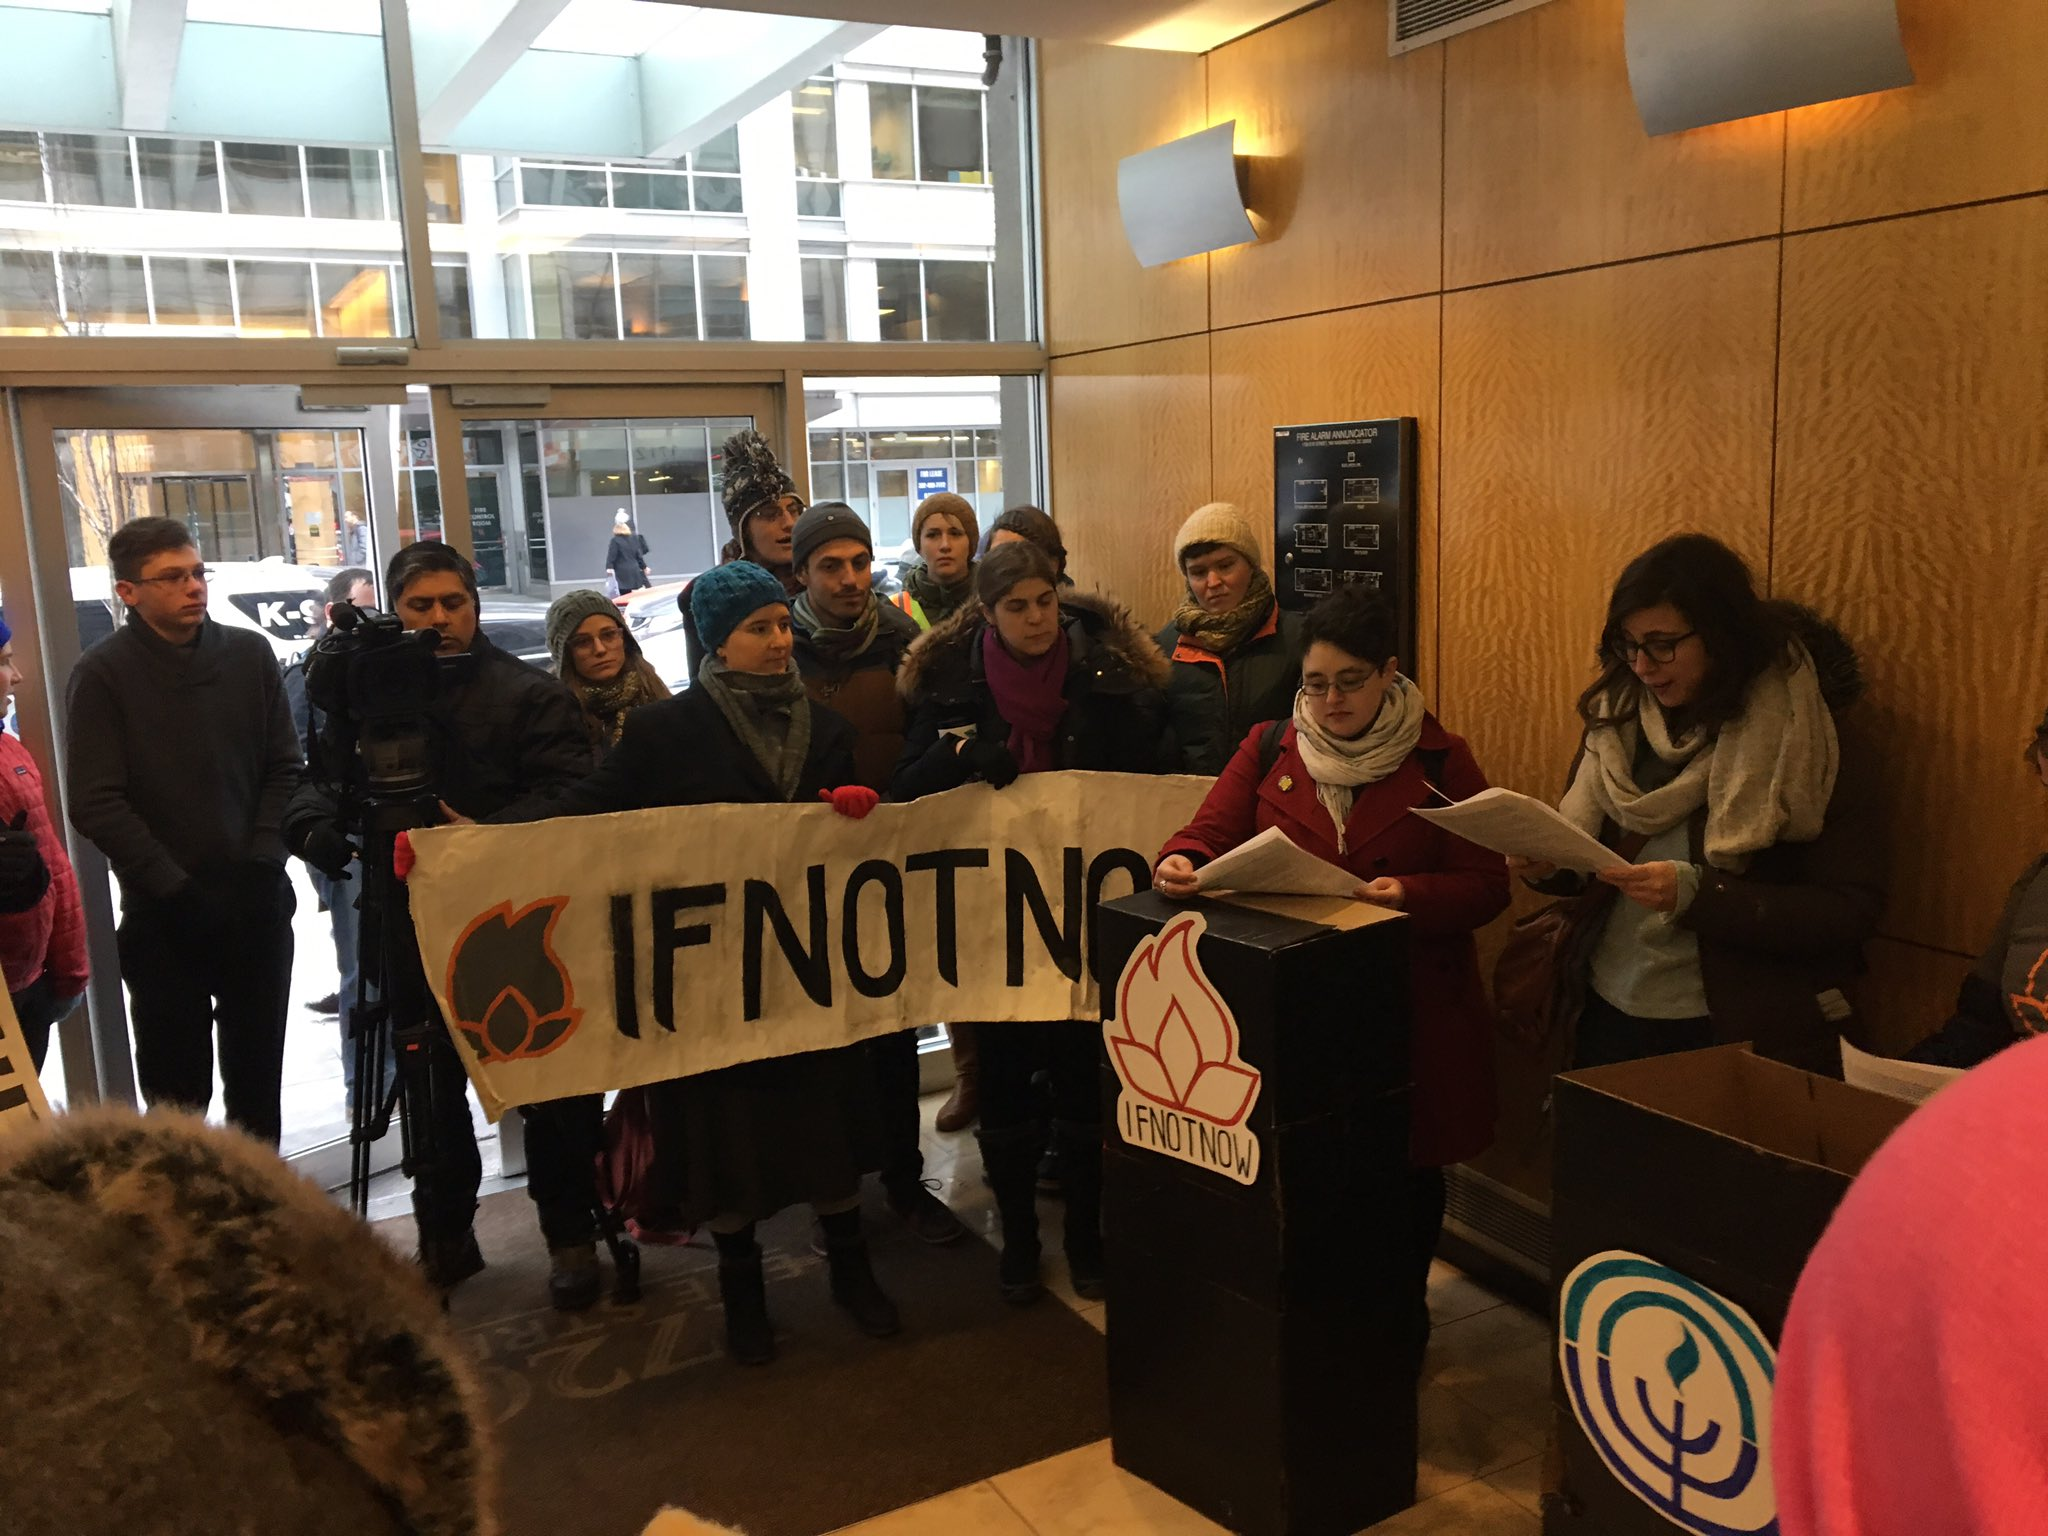 IfNotNow stages protest theater in JFNA's lobby on January 9, 2017, photo by twitter user Ethan Miller